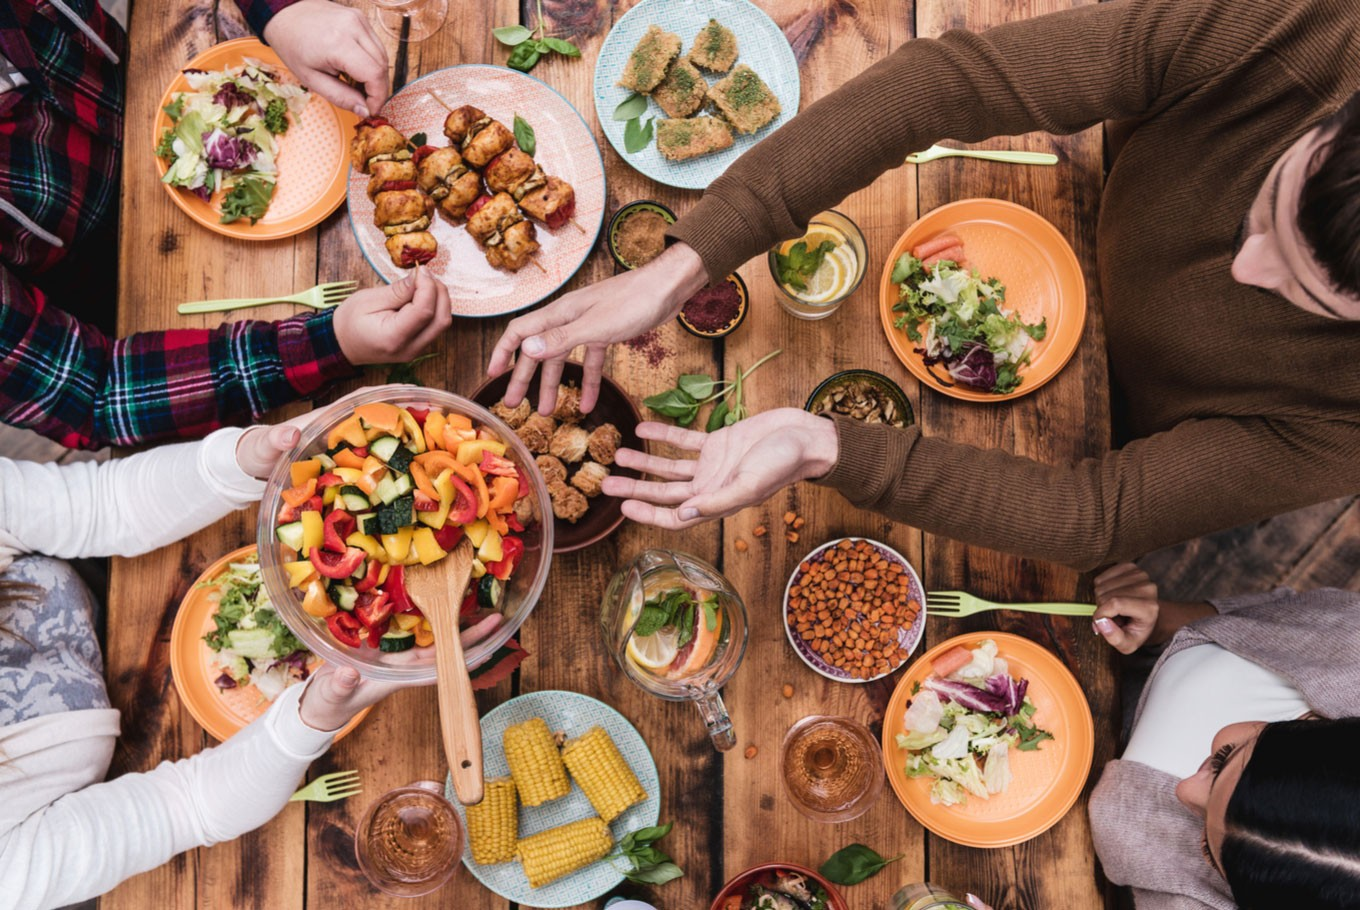 What is mindful eating and how do you do it?